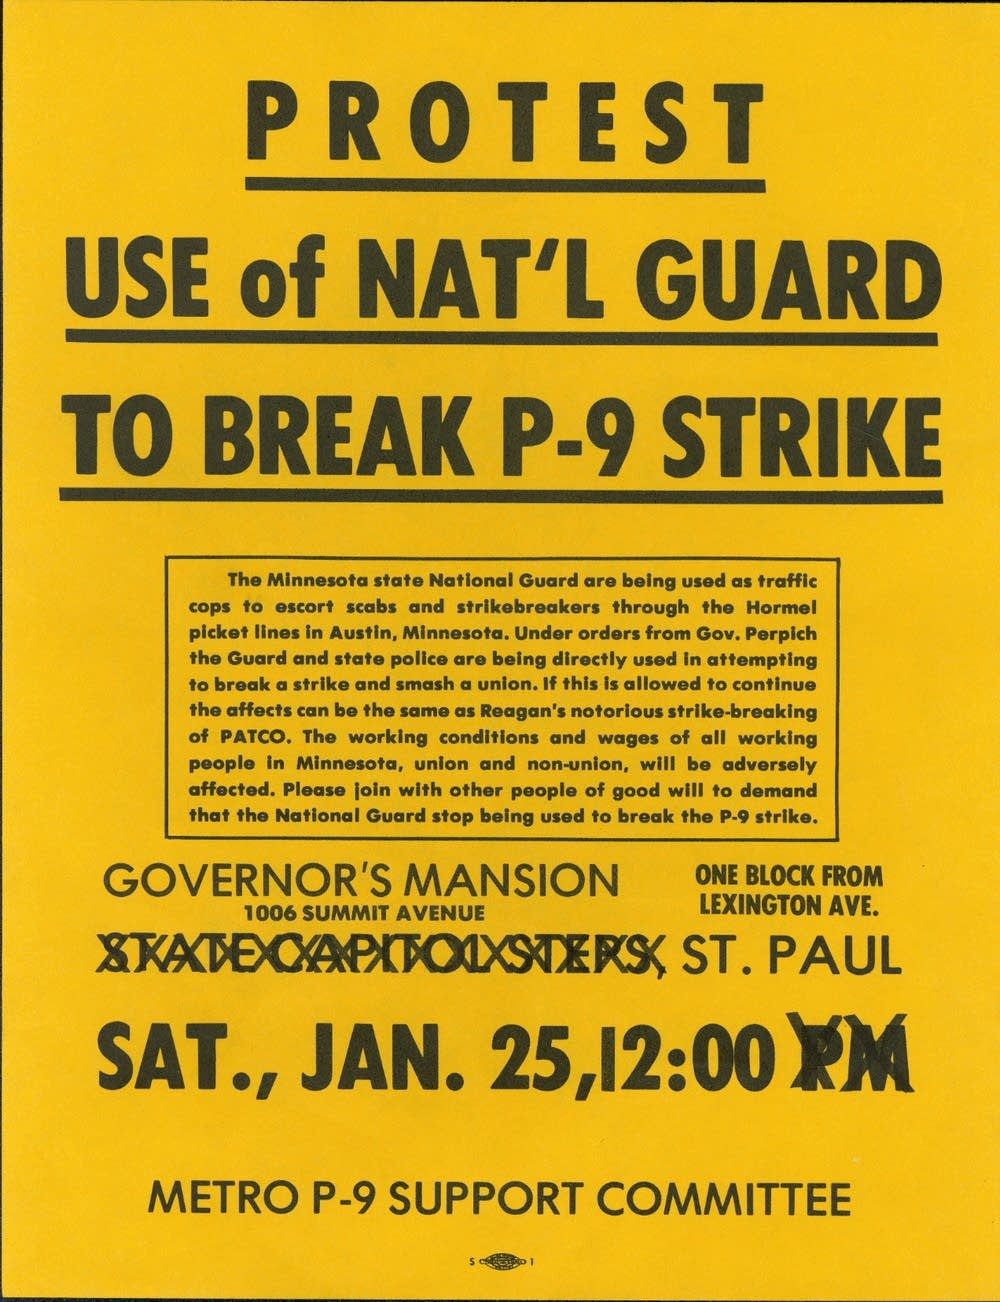 Protest use of National Guard to break P-9 strike